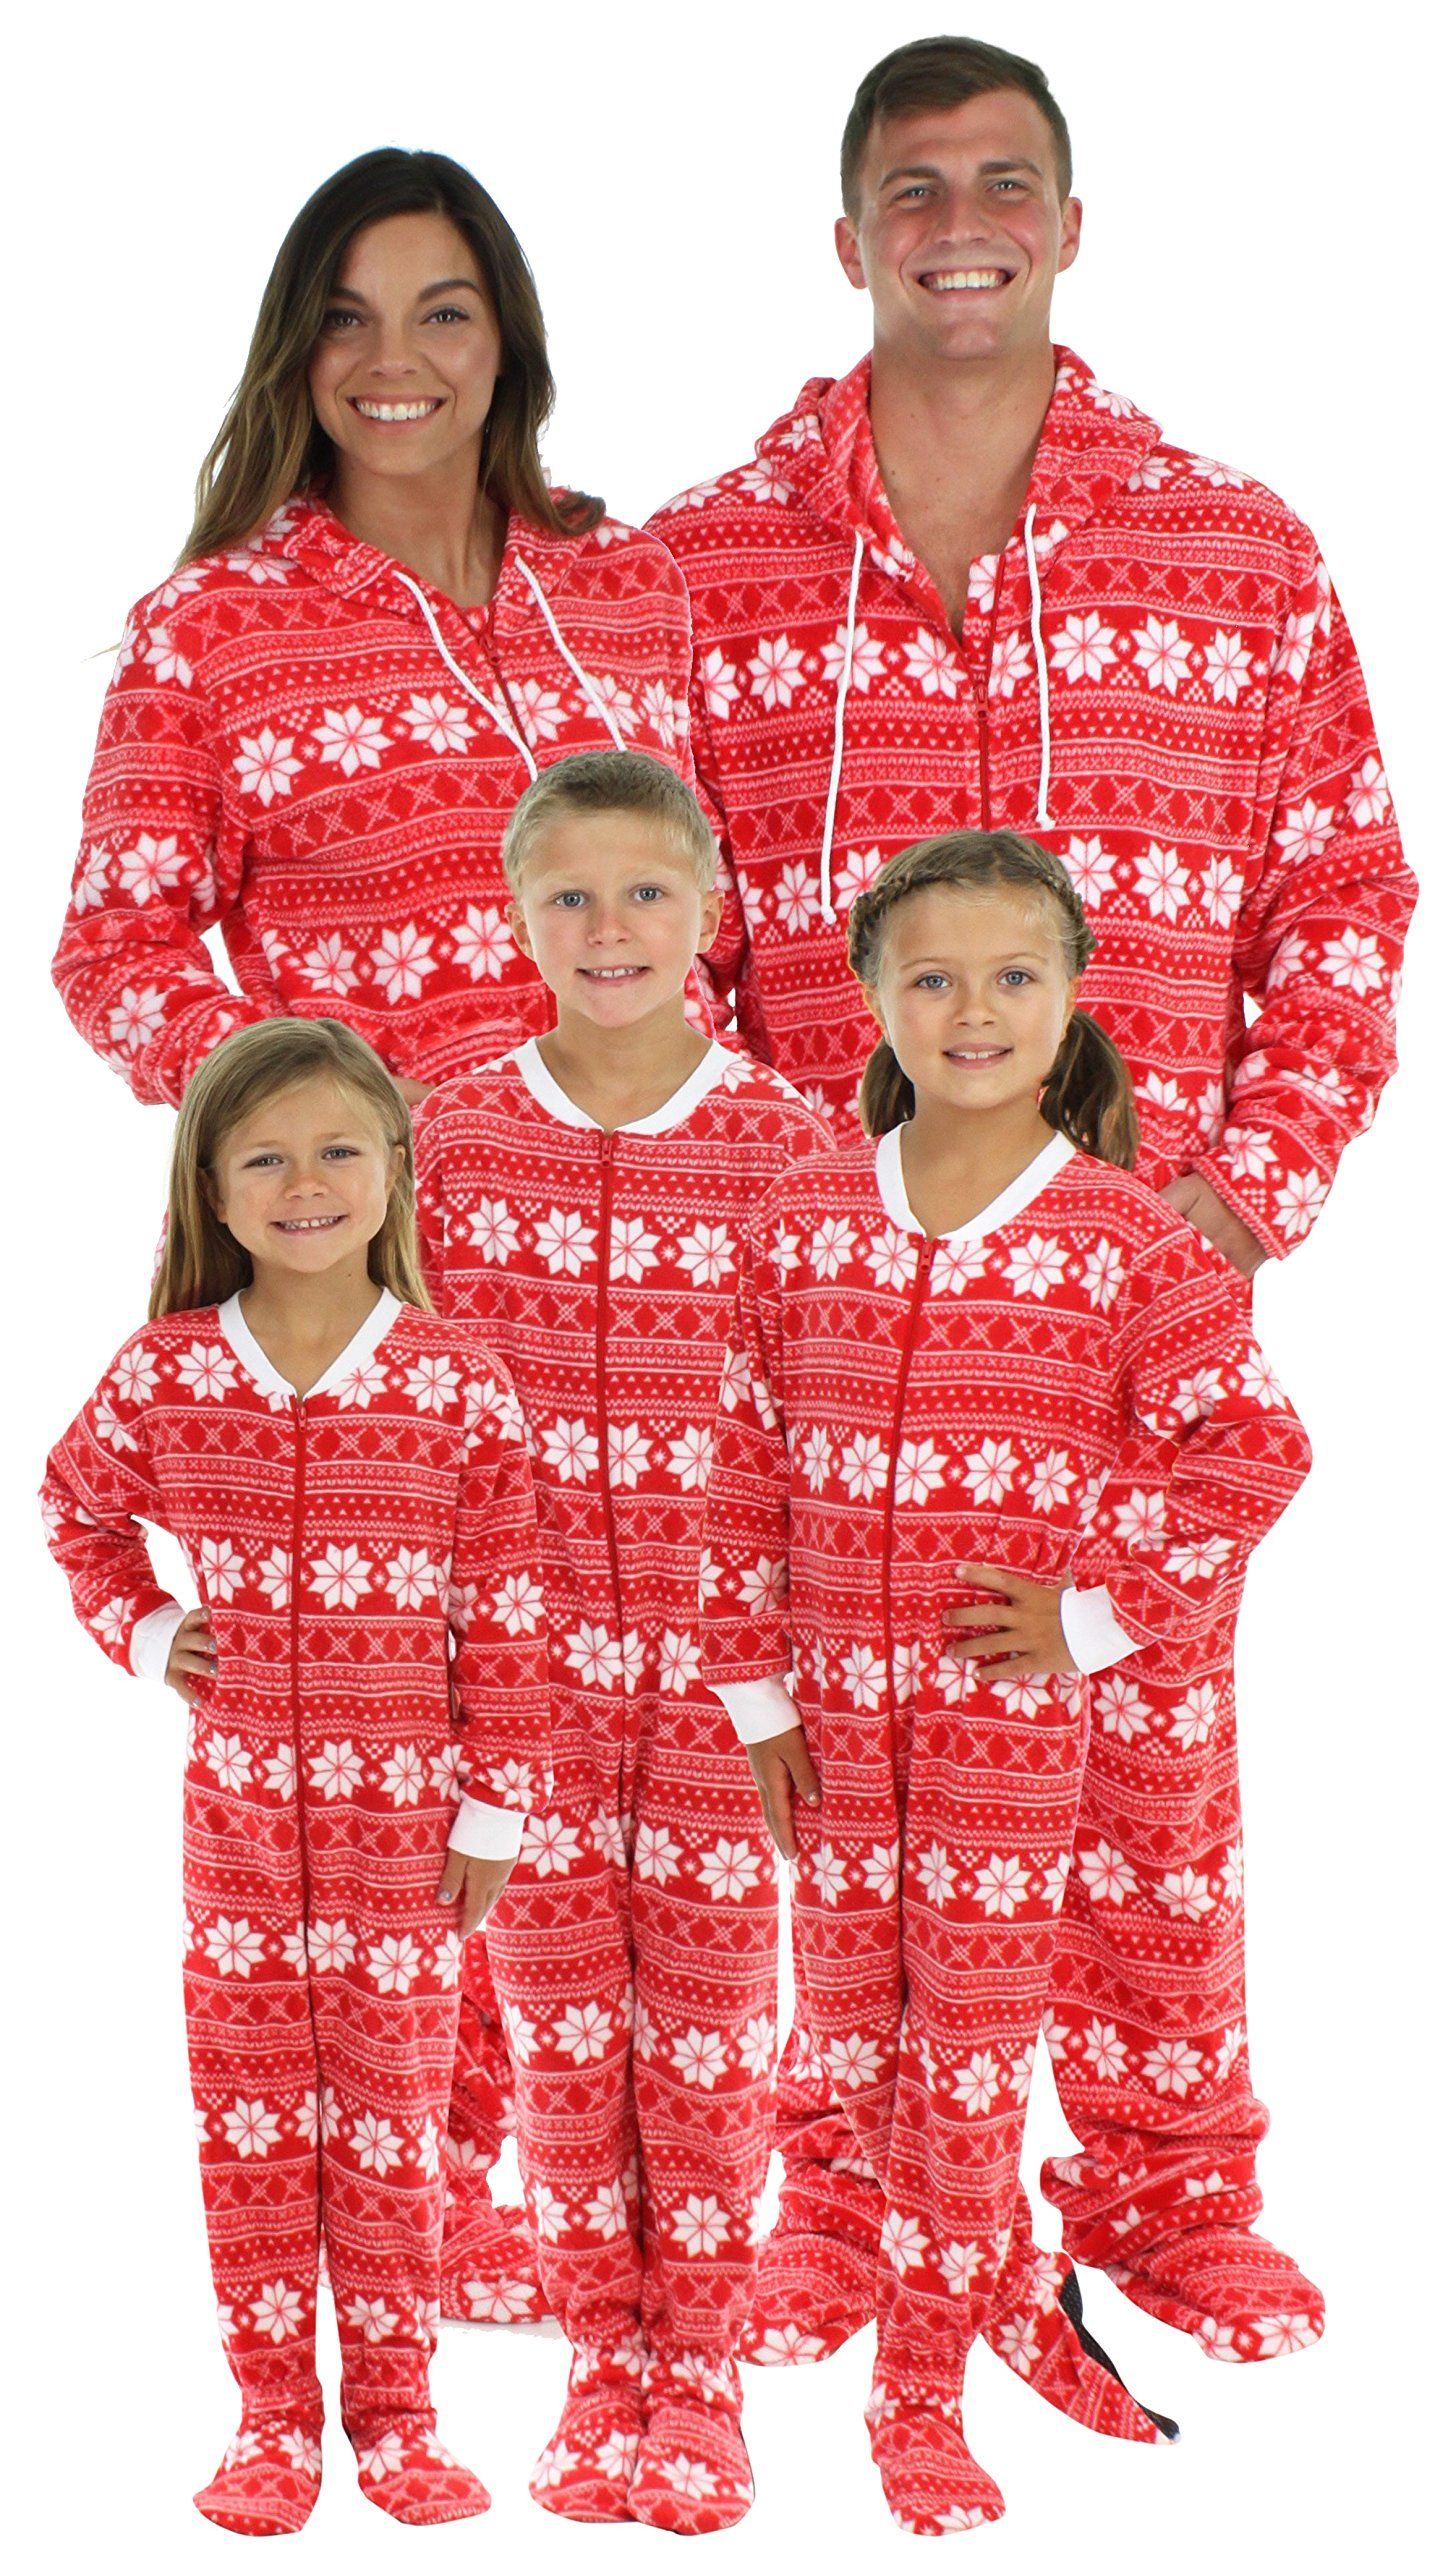 SleepytimePjs Family Matching Red Snowflake Onesie PJs Footed Pajamas  Women s Red Snowflake – (STM17-2010-W-MED) 6026321ac